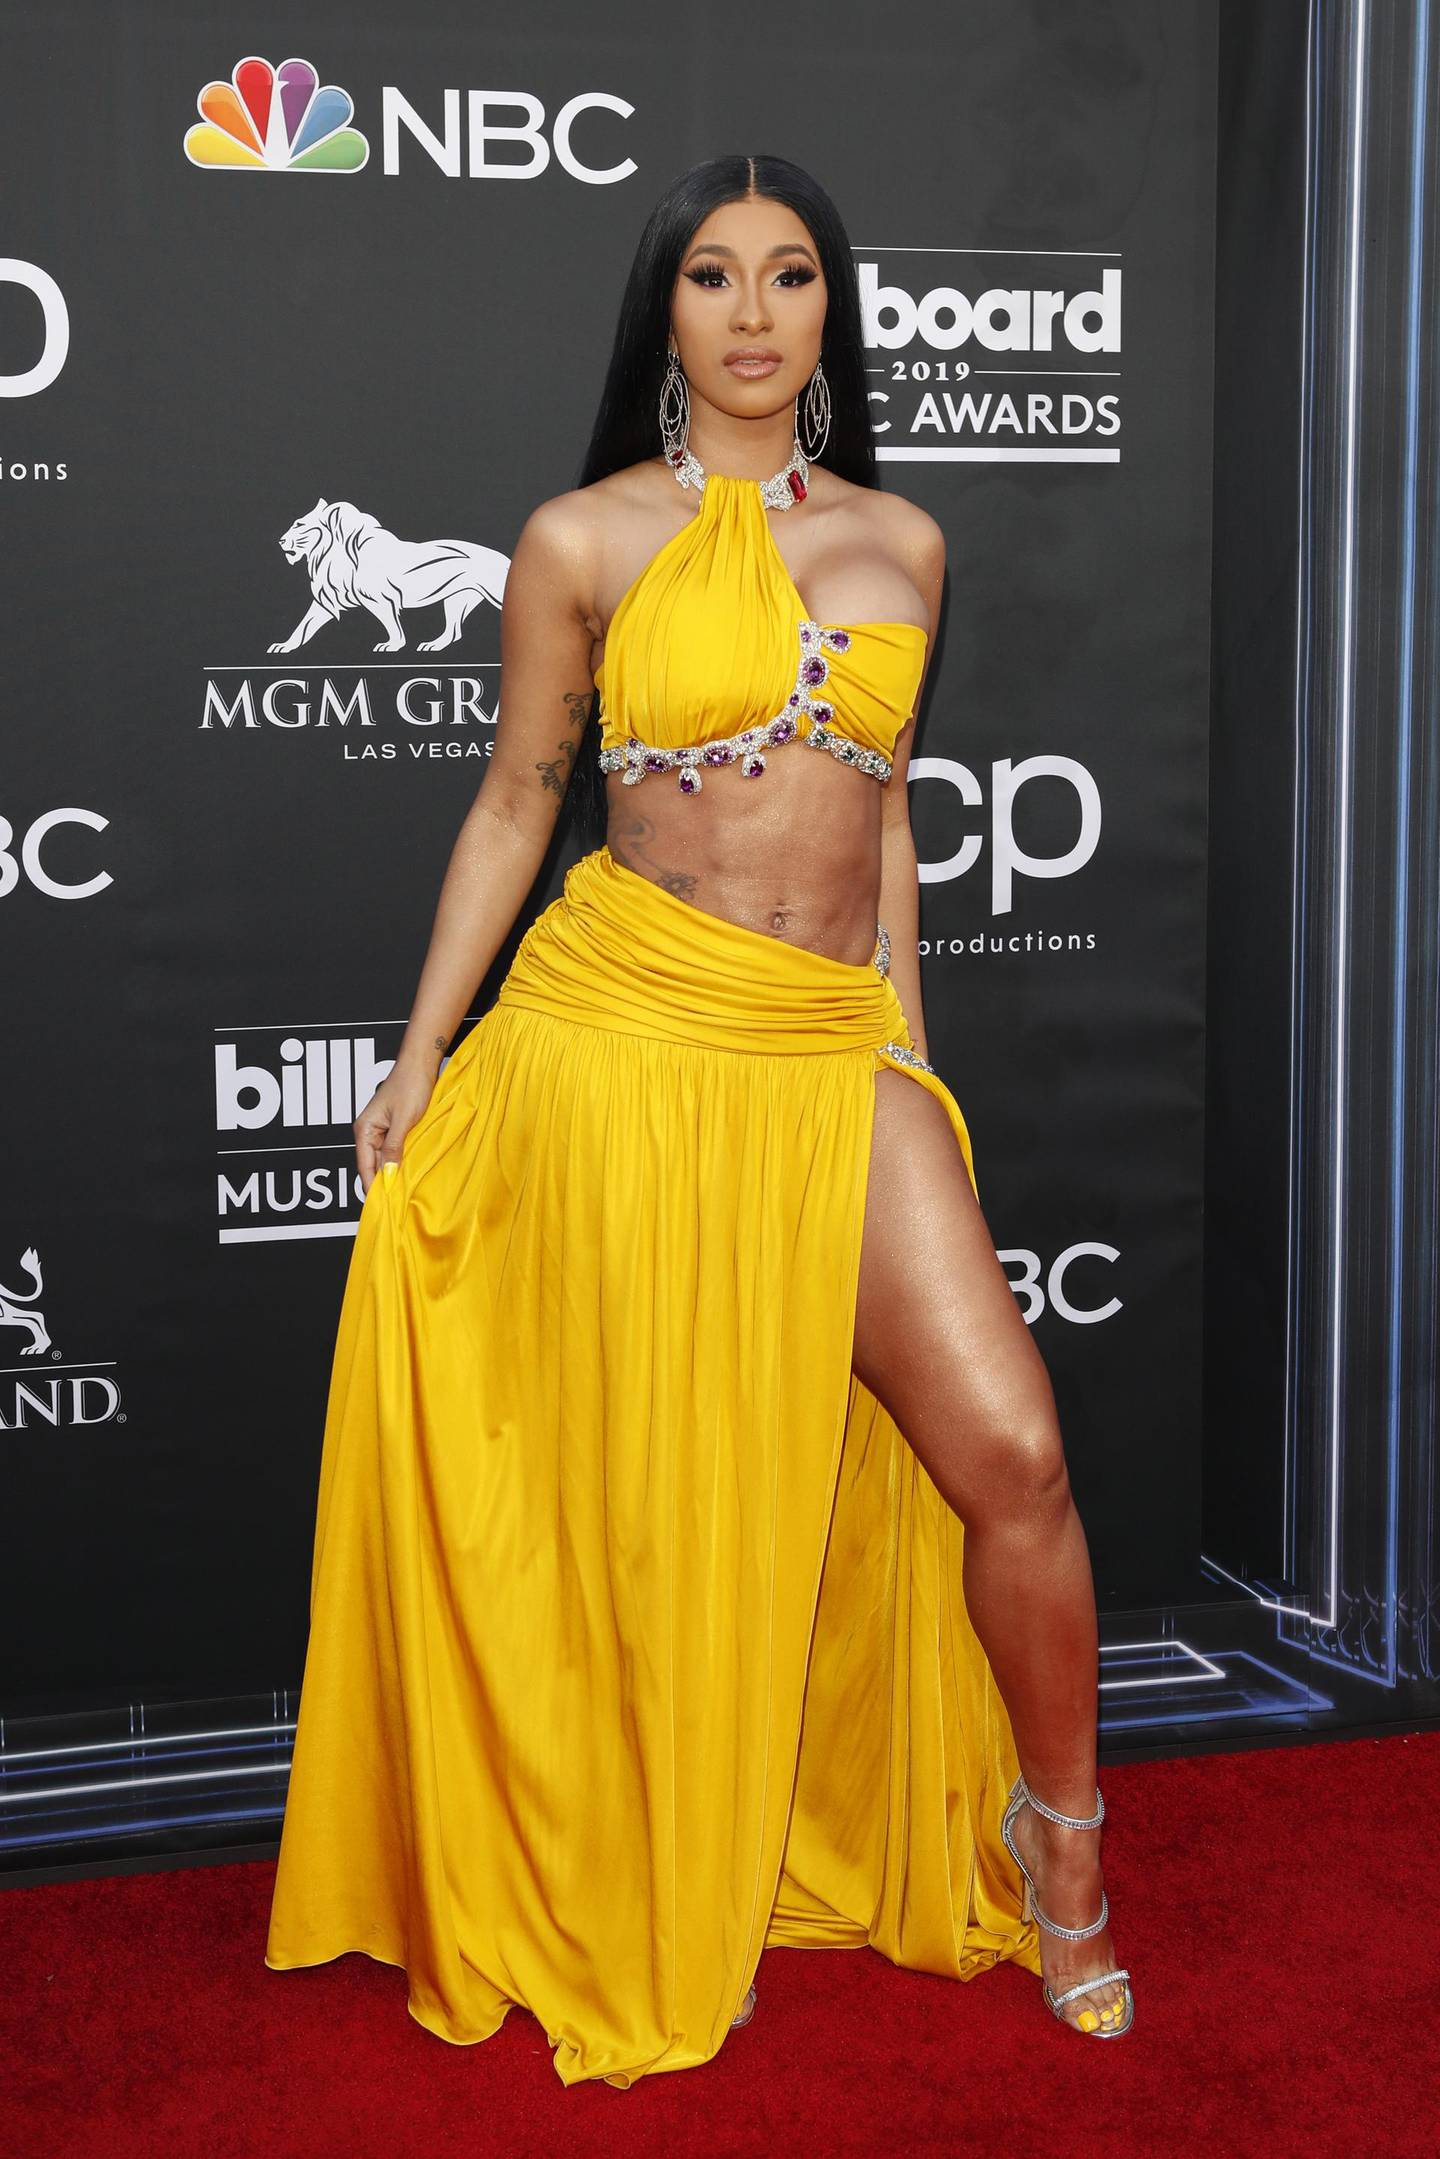 epa07541568 US rapper Cardi B arrives for the 2019 Billboard Music Awards at the MGM Grand Garden Arena in Las Vegas, Nevada, USA, 01 May 2019. The Billboard Music Awards finalists are based on US year-end chart performance, sales, number of downloads and total airplay.  EPA/NINA PROMMER